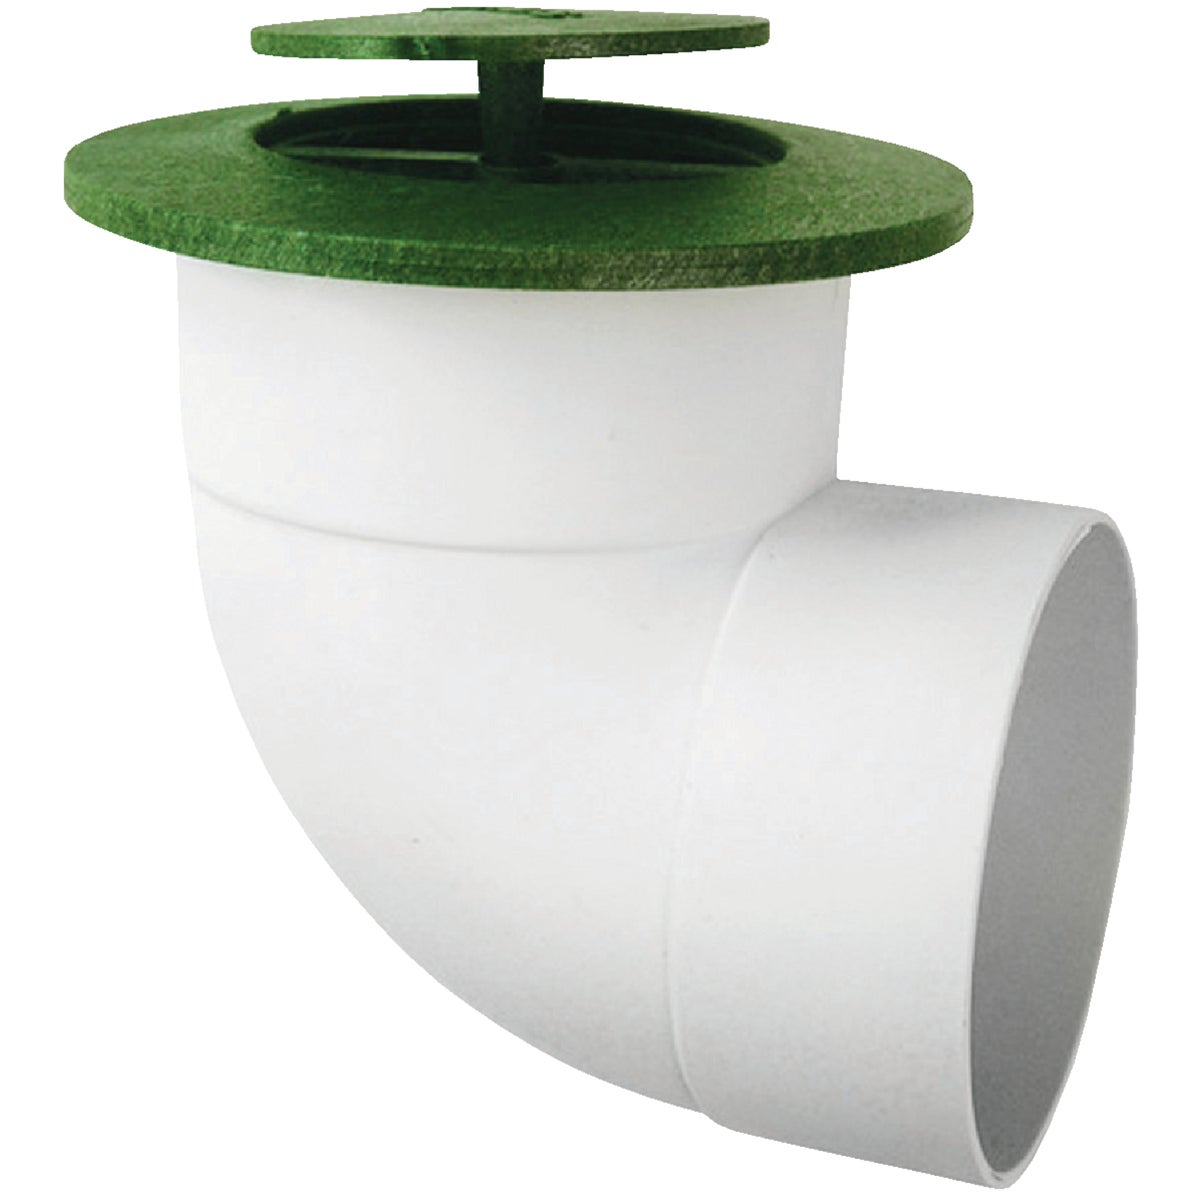 "3"" DRAINAGE EMITTER - 322G by National Diversified"